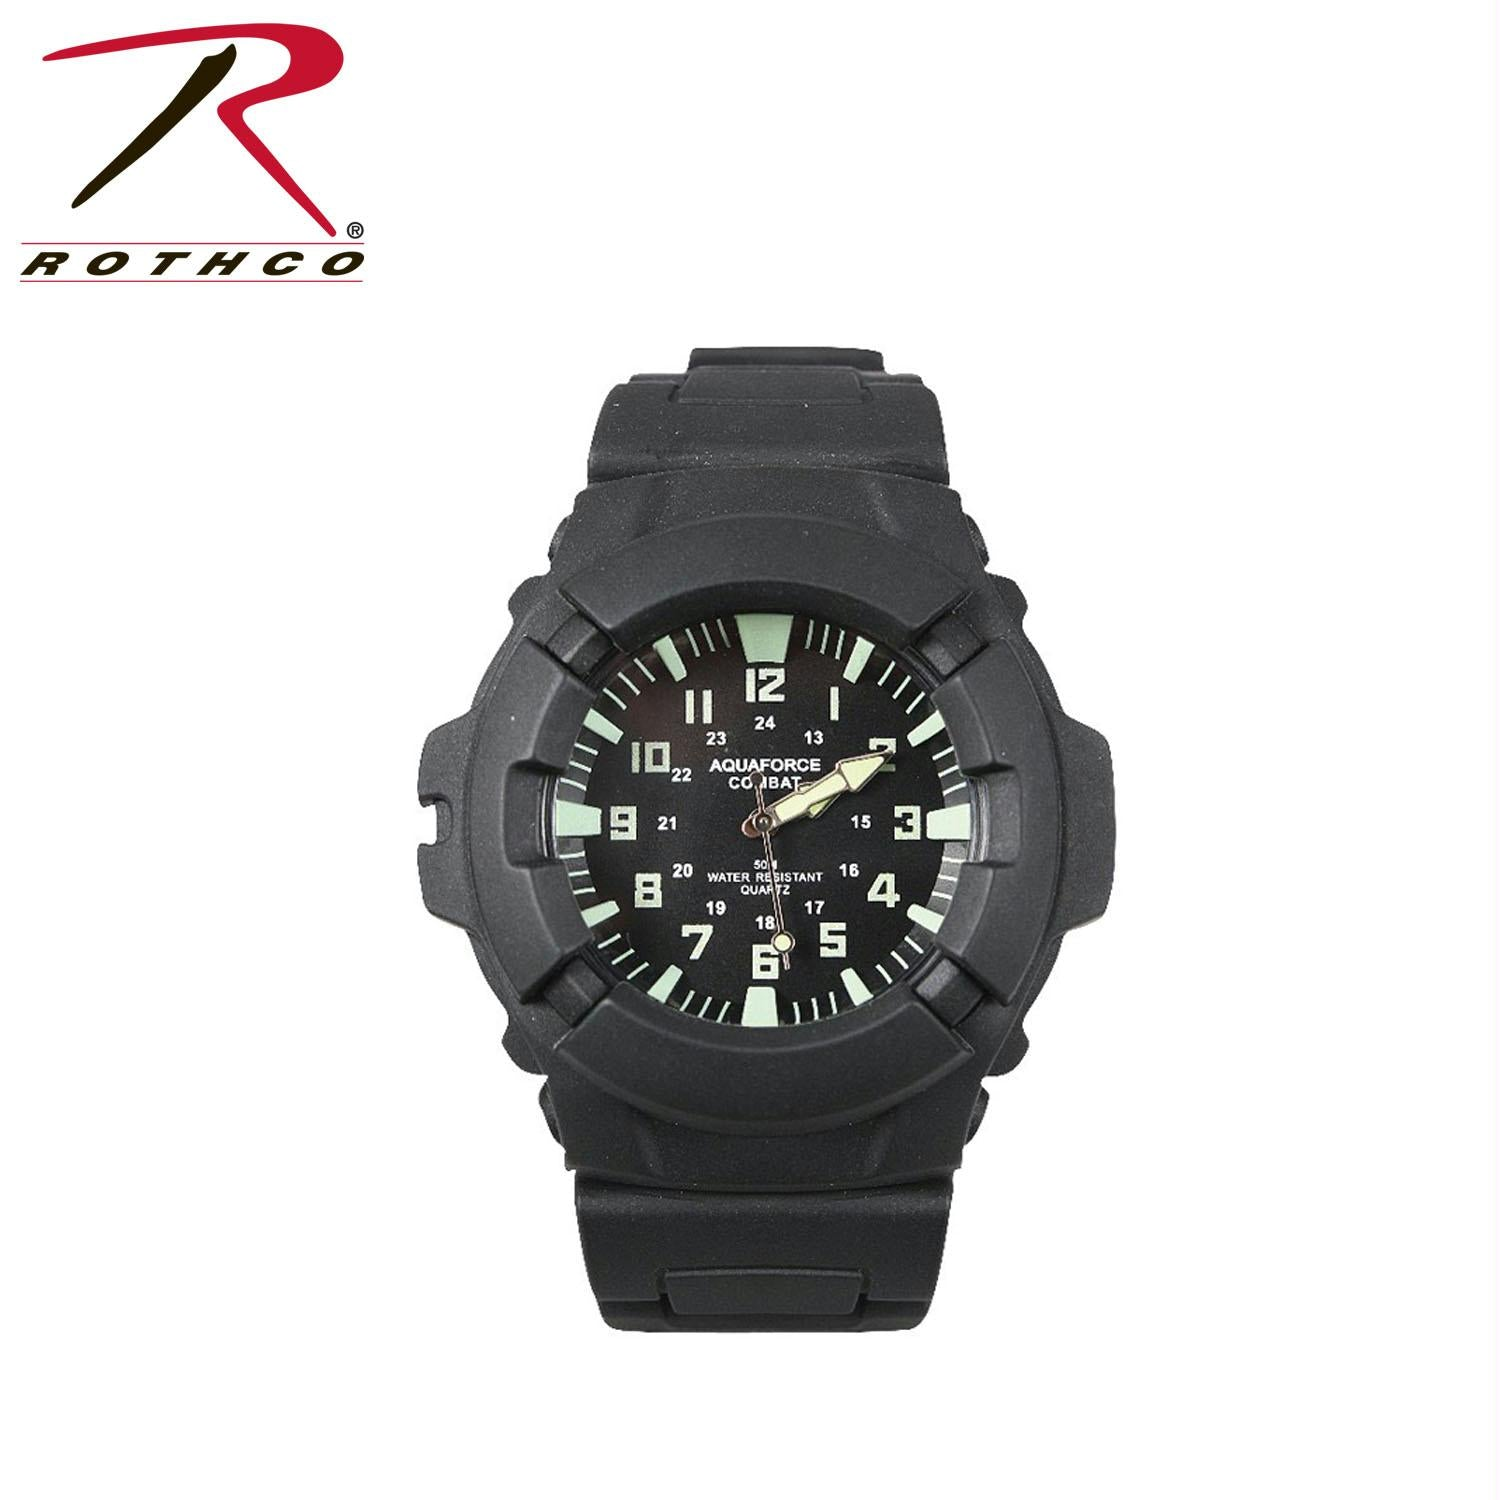 Aquaforce Combat Watch